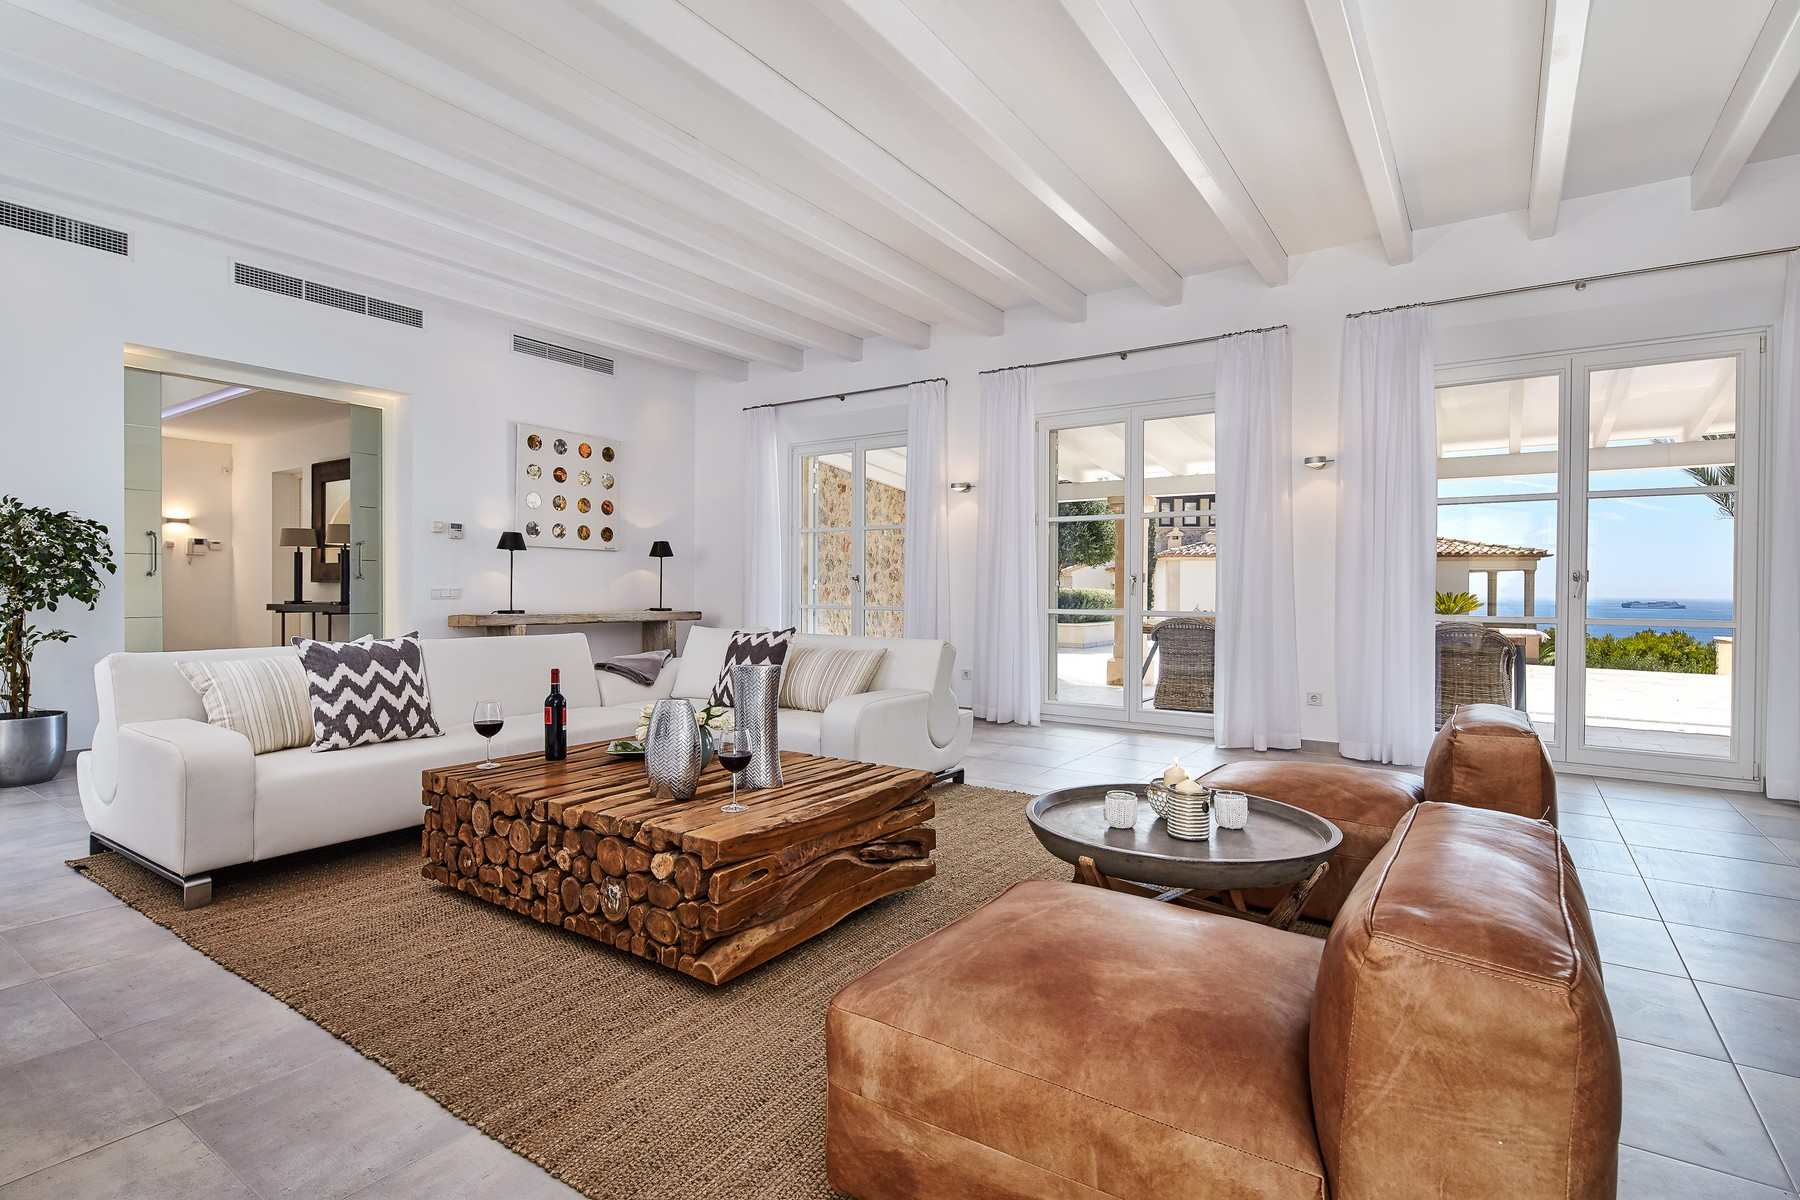 Single Family Home for Sale at Luxury villa with modern interior in Cala Moragues Port Andratx, Mallorca, 07157 Spain